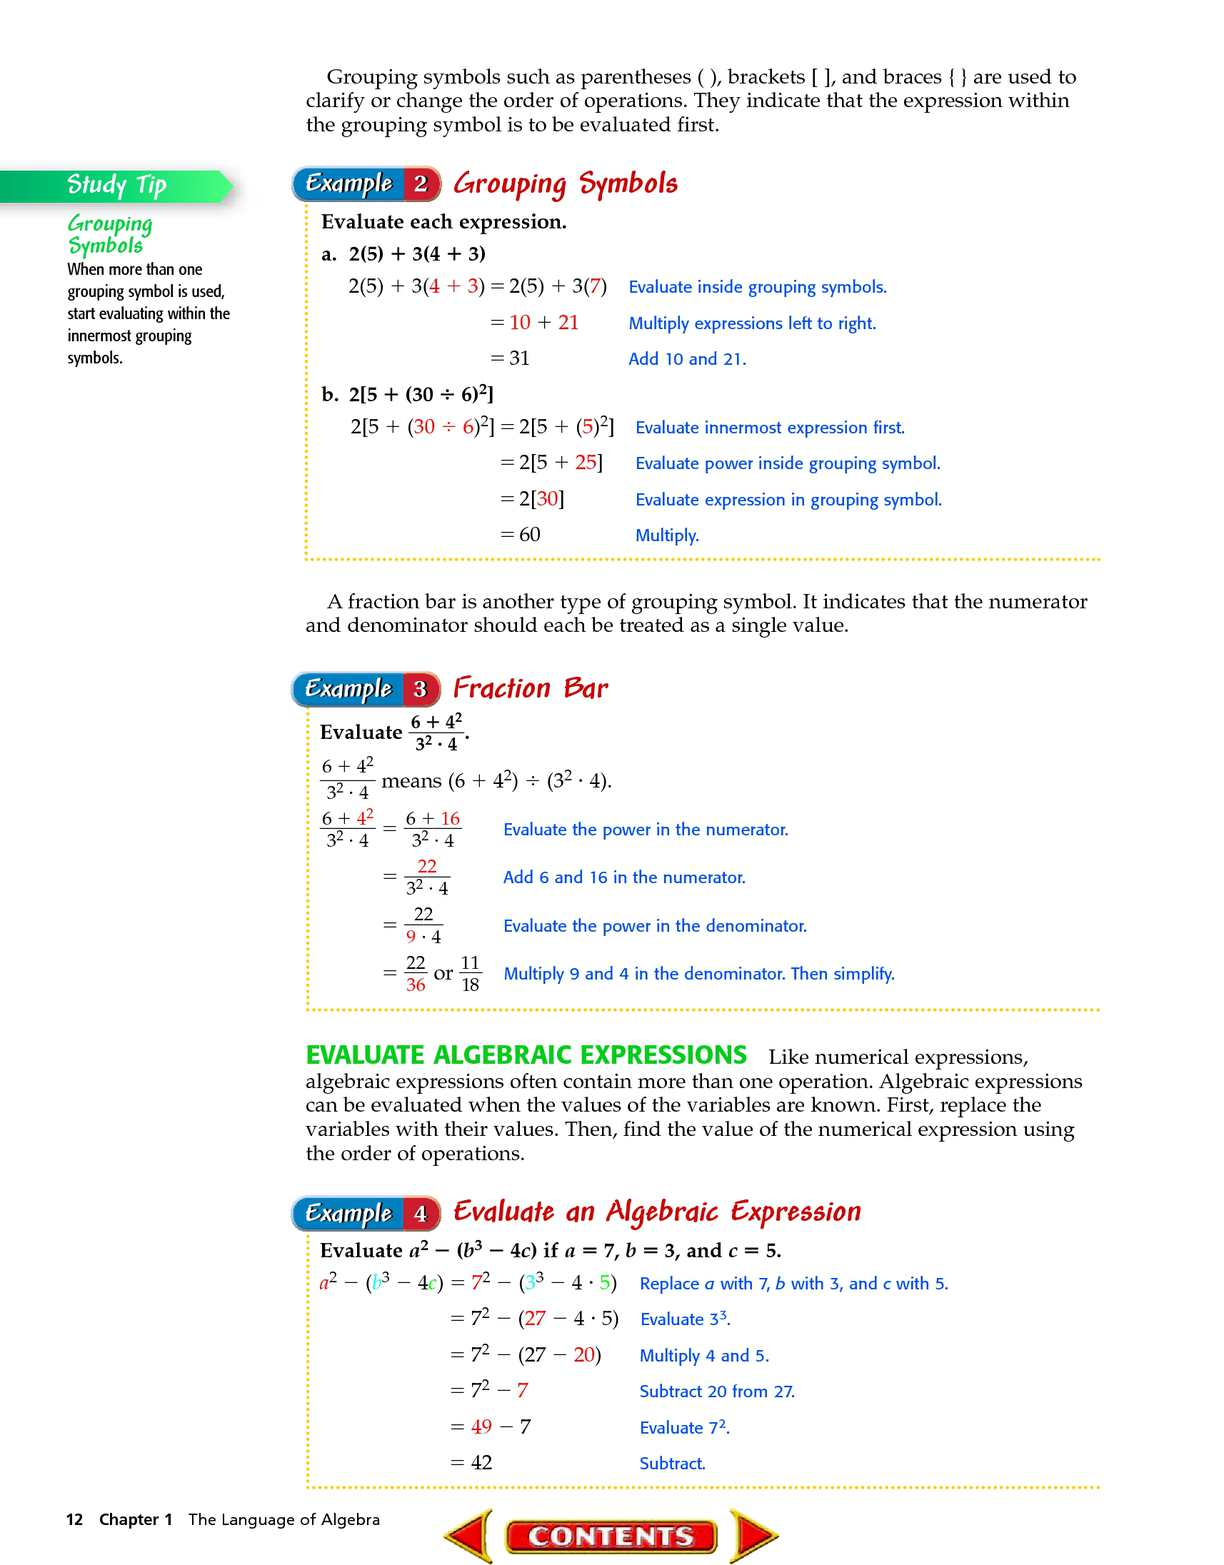 Algebra 1 mcgraw hill calameo downloader page 32 biocorpaavc Choice Image